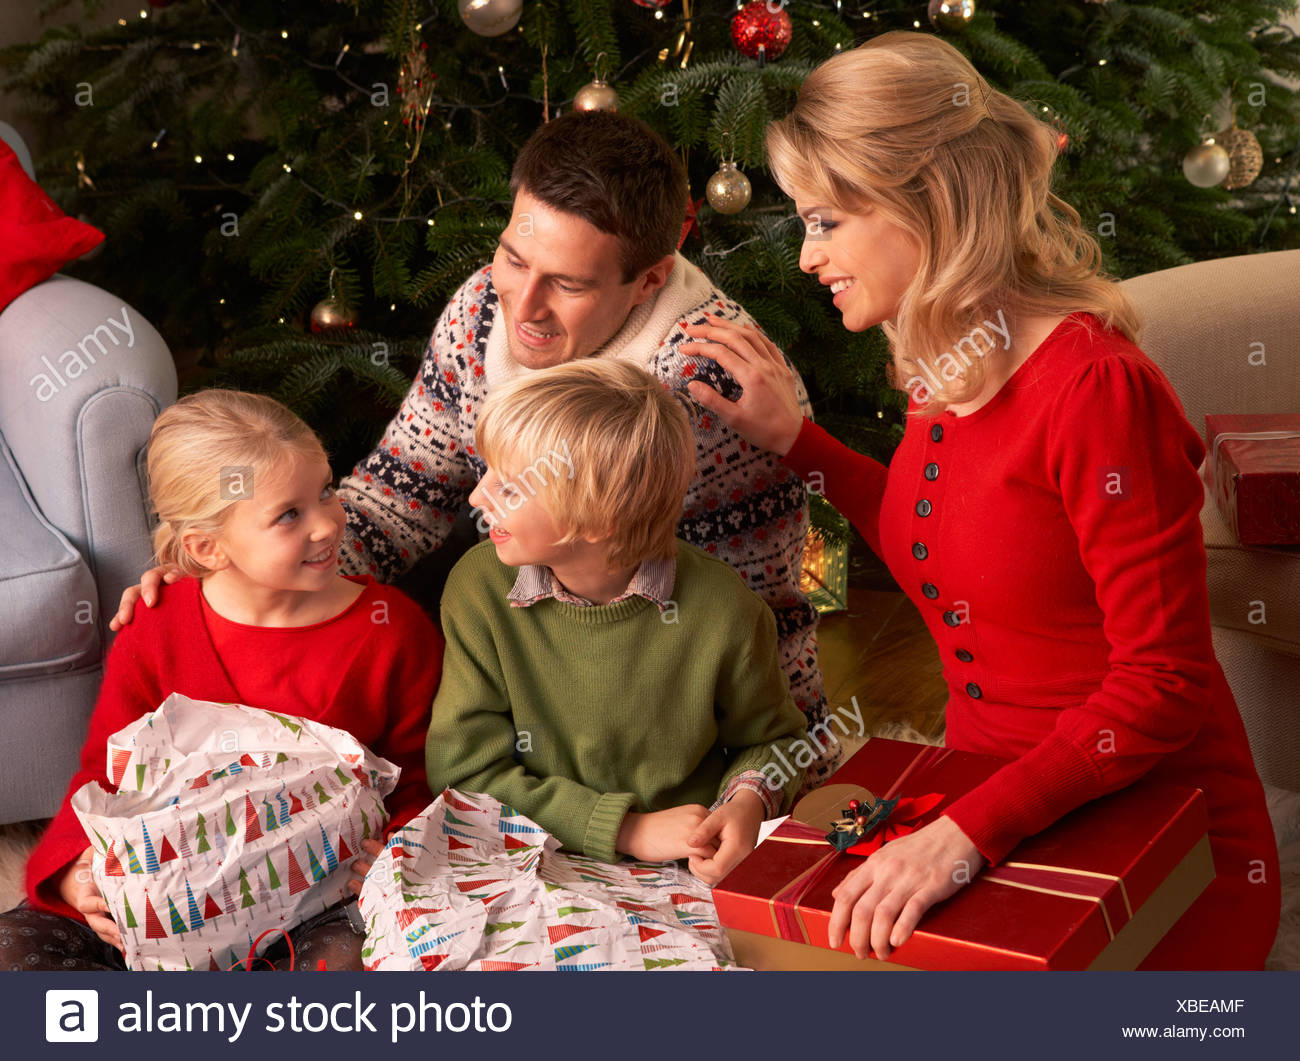 Family Opening Christmas Gifts At Home Stock Photo: 282442847 - Alamy